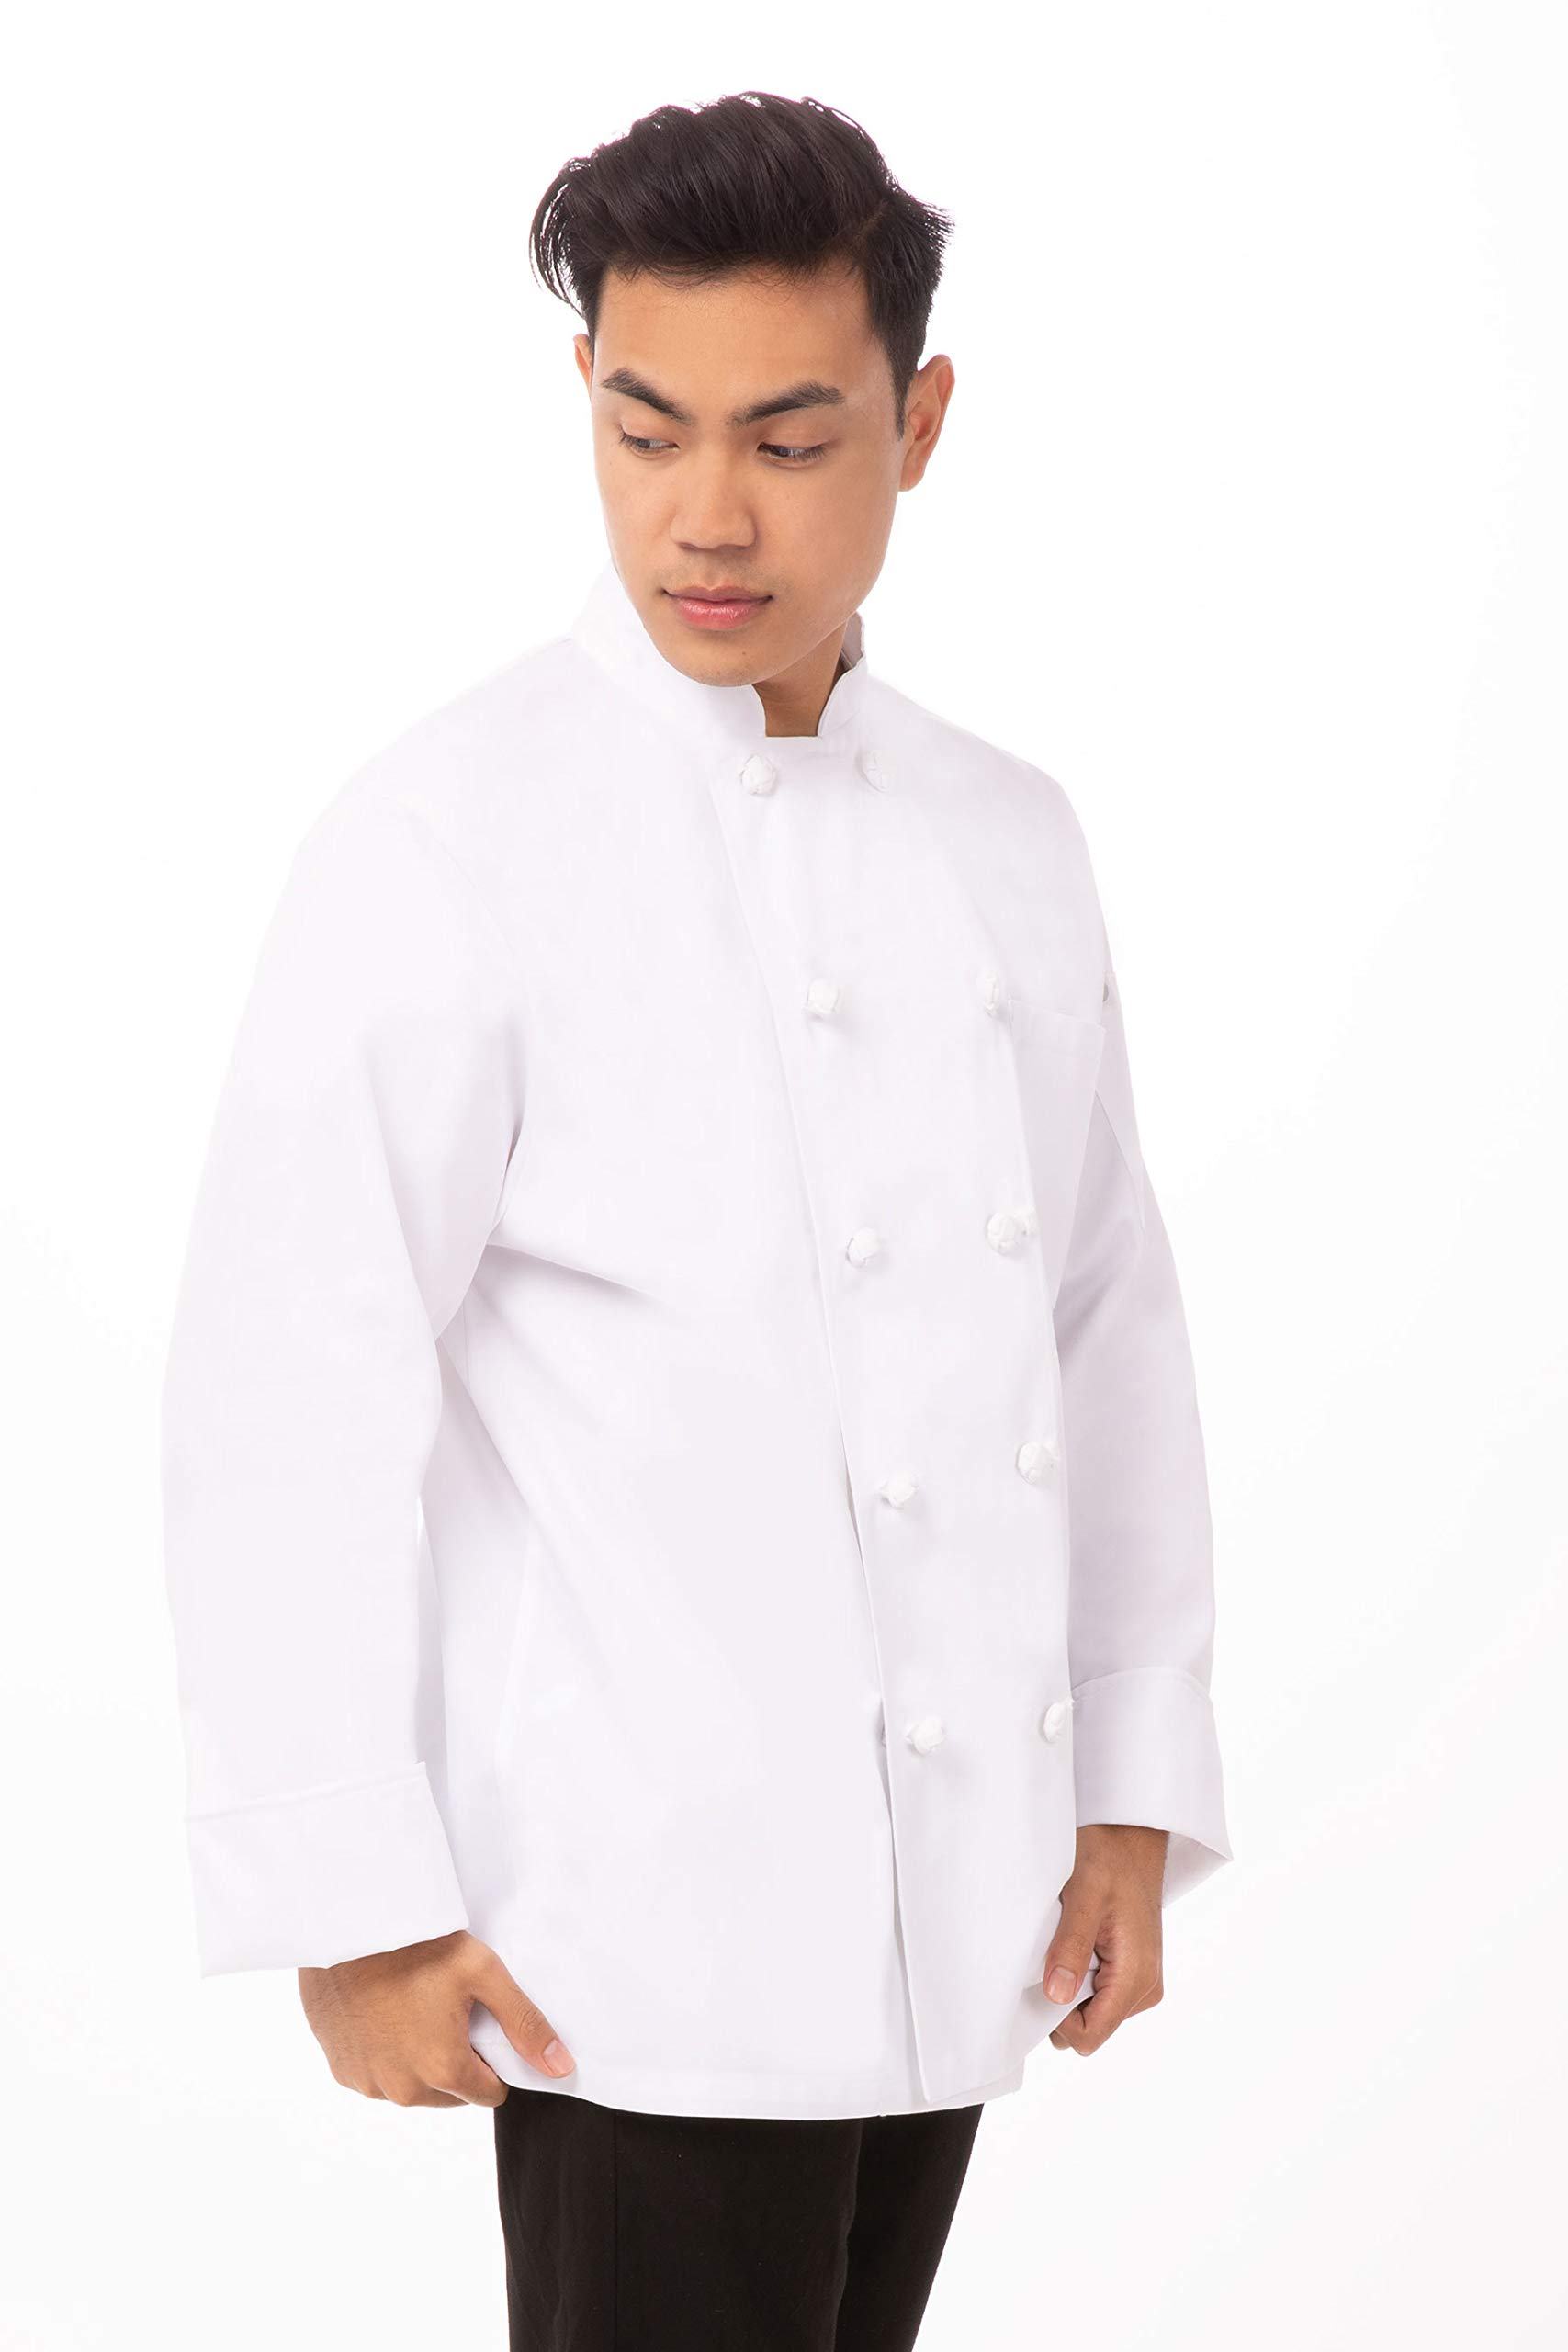 Chef Works Men's Montreaux Executive Chef Coat, White, 40 by Chef Works